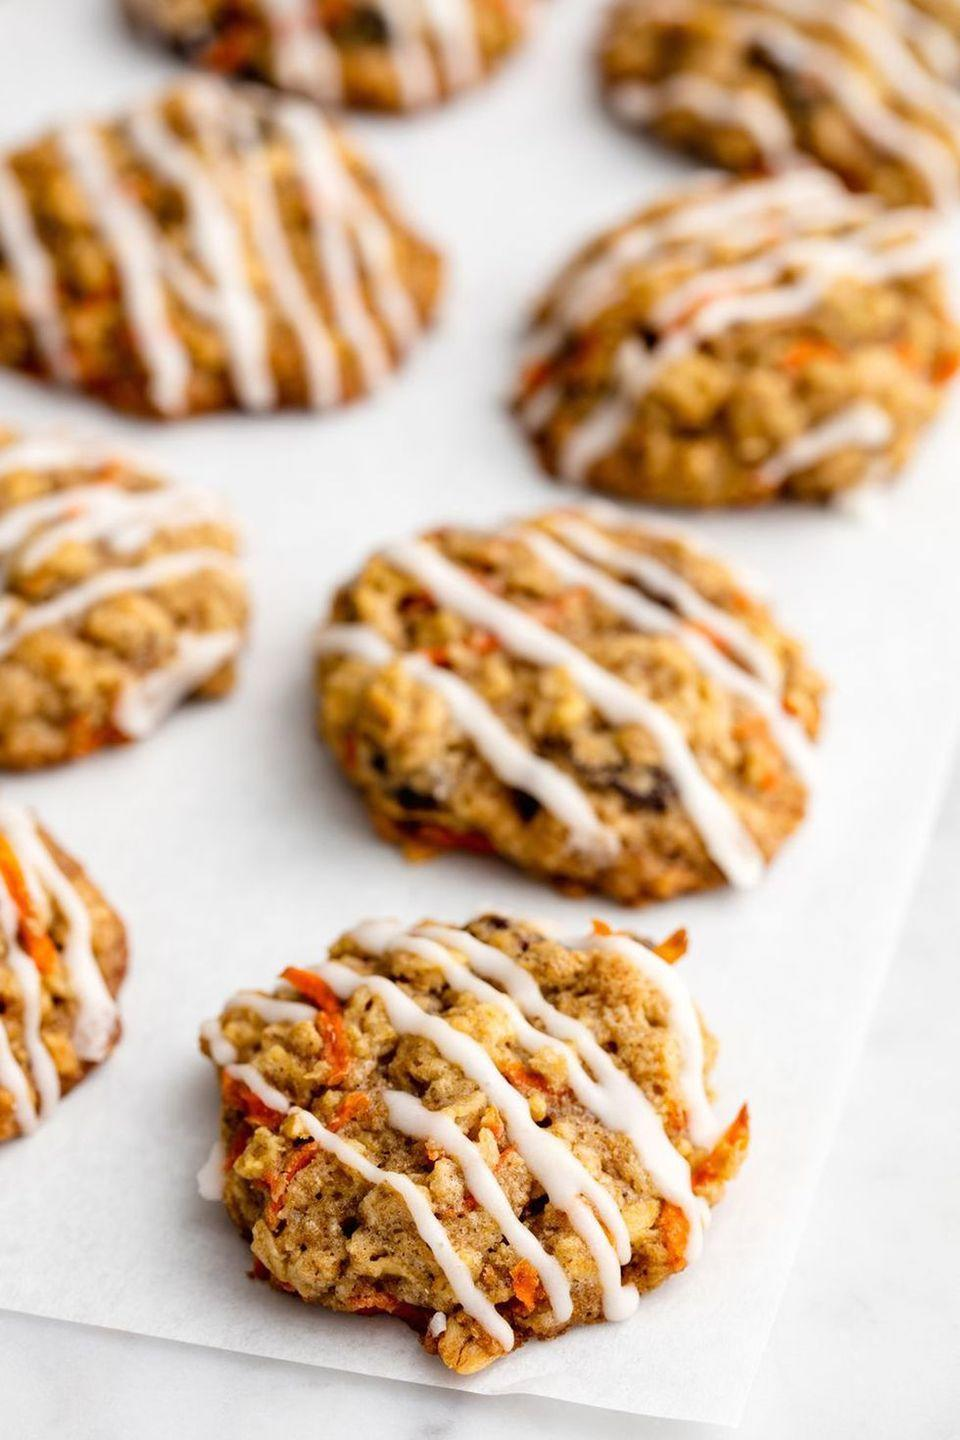 "<p>Take whatever carrots the Easter Bunny didn't eat (we know you left him some) and use them to create these spicy carrot cake cookies. </p><p><em><a href=""https://www.delish.com/cooking/recipe-ideas/recipes/a50448/carrot-cake-cookies-recipe/"" rel=""nofollow noopener"" target=""_blank"" data-ylk=""slk:Get the recipe from Delish »"" class=""link rapid-noclick-resp"">Get the recipe from Delish »</a></em> </p>"